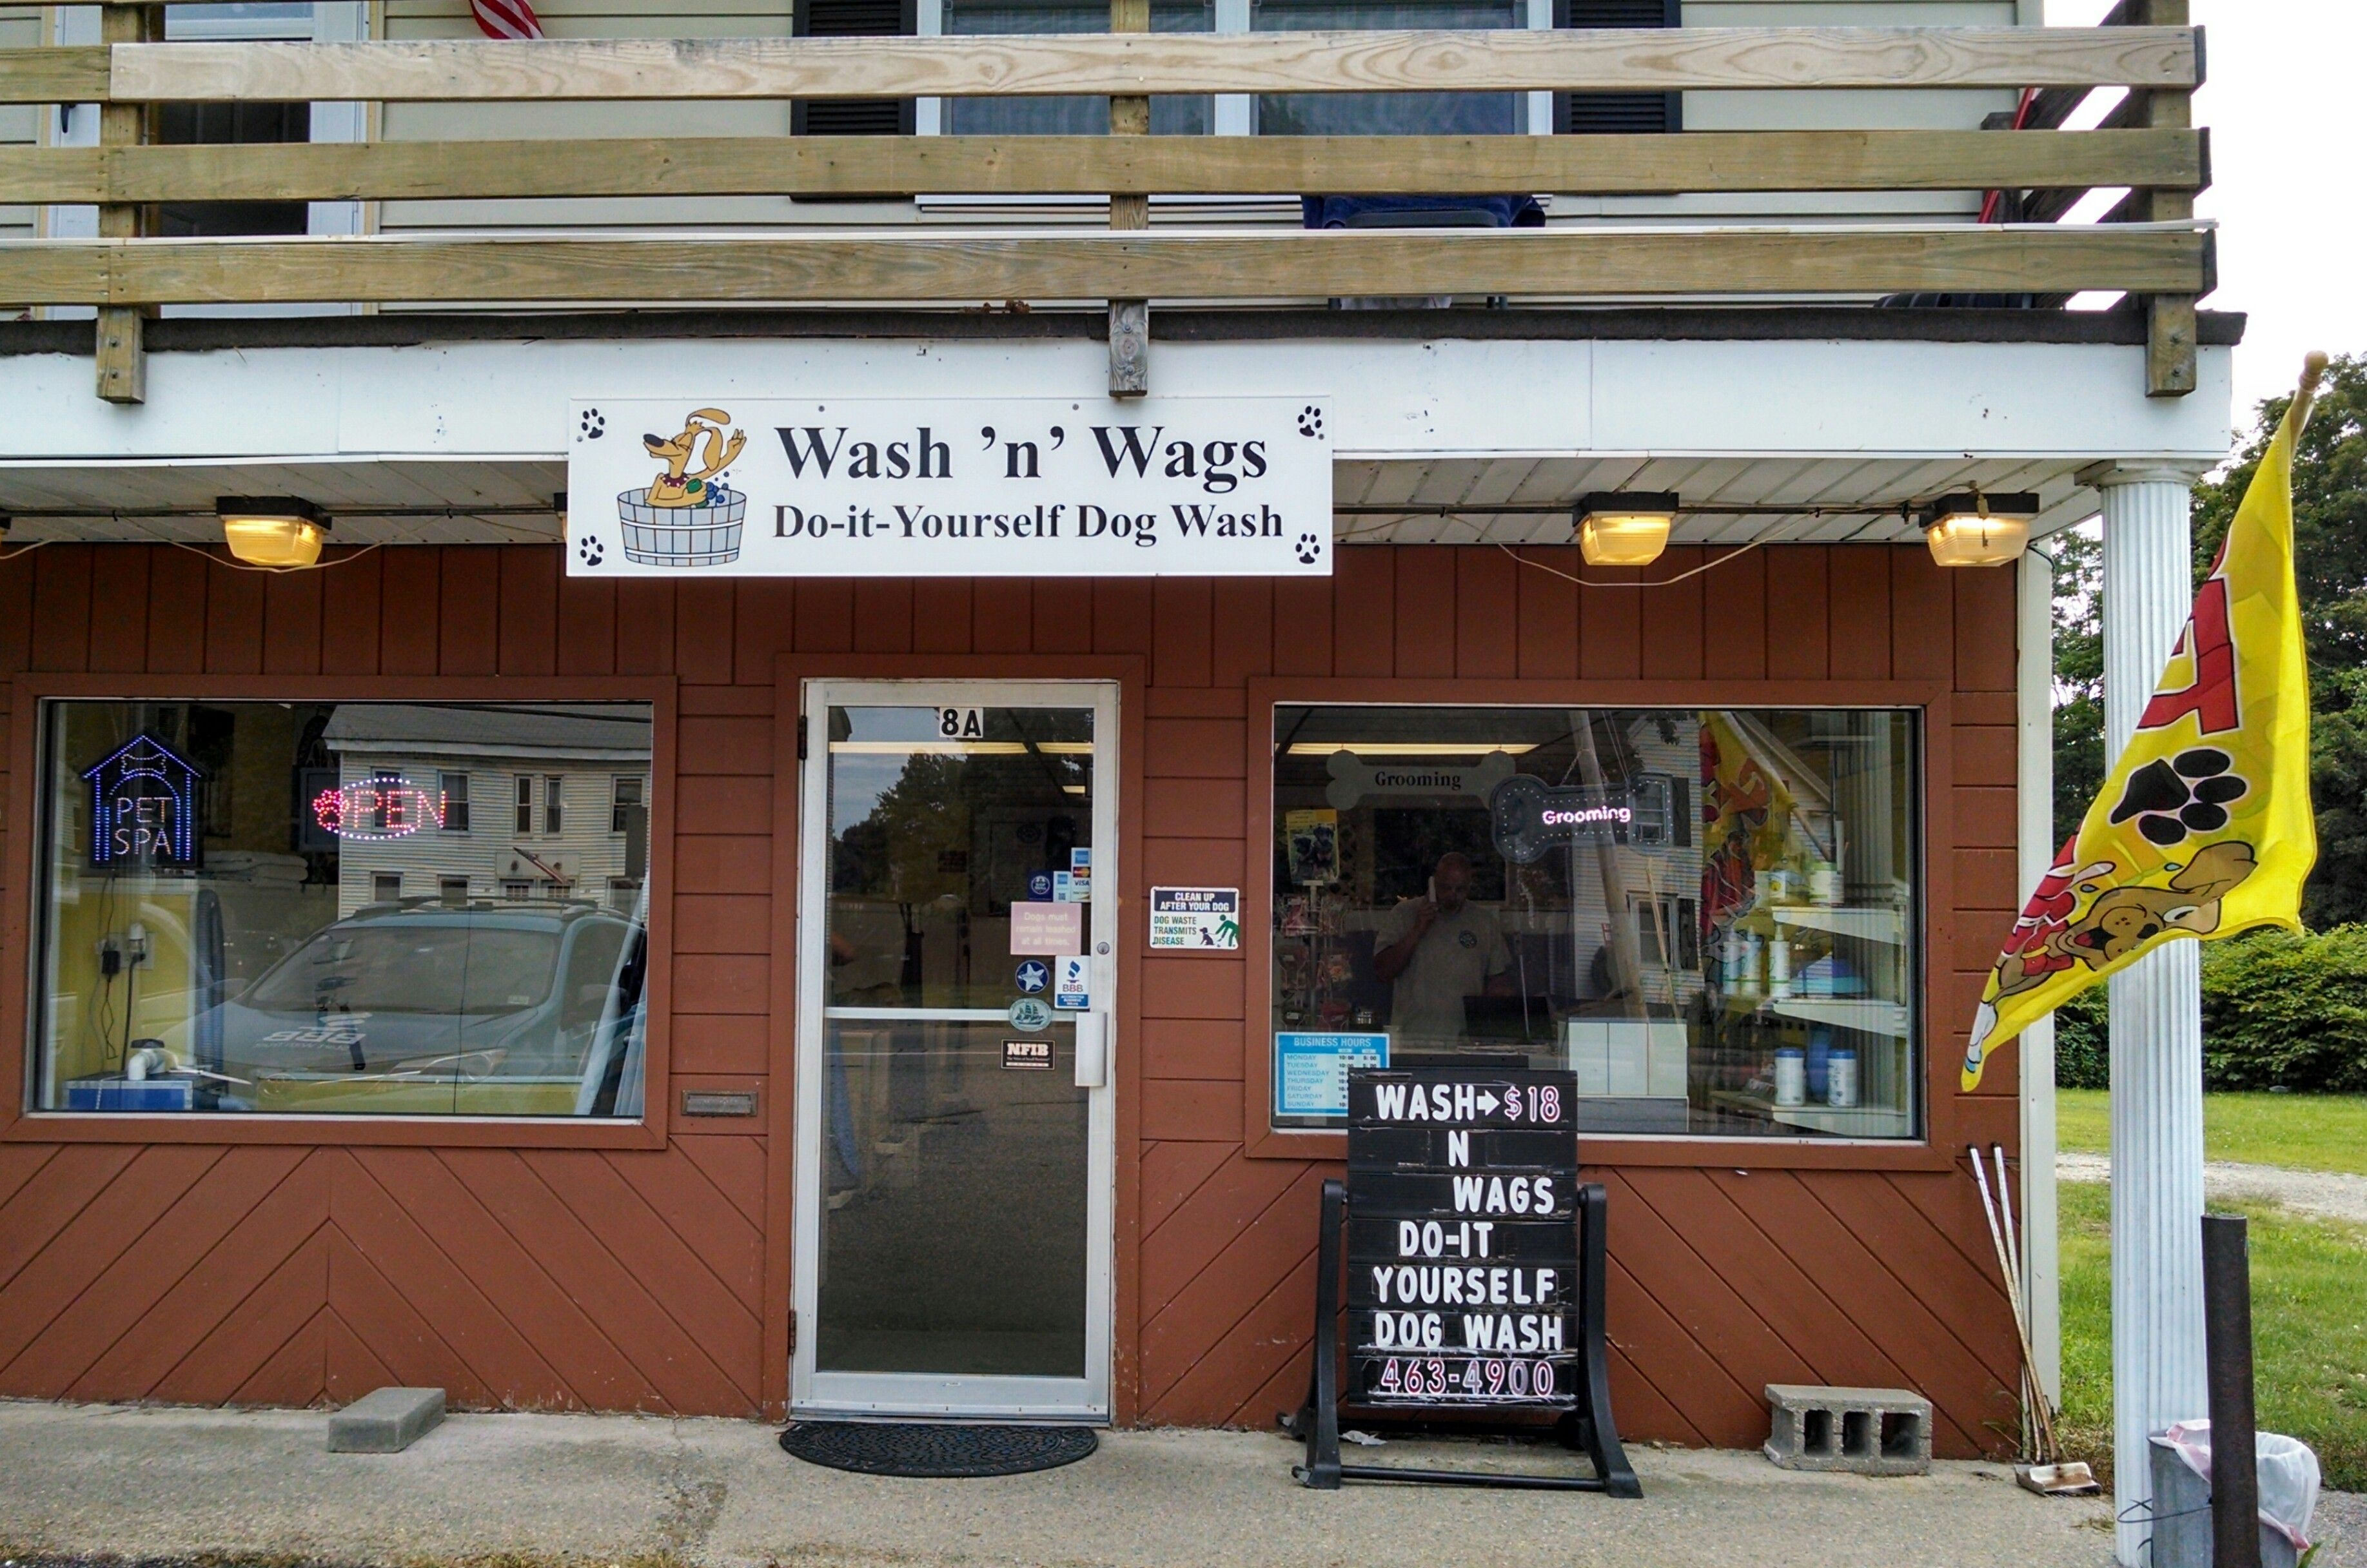 Wash n wags dog grooming and do it yourself dog wash salisbury ma wash n wags dog grooming and do it yourself dog wash salisbury ma in solutioingenieria Images